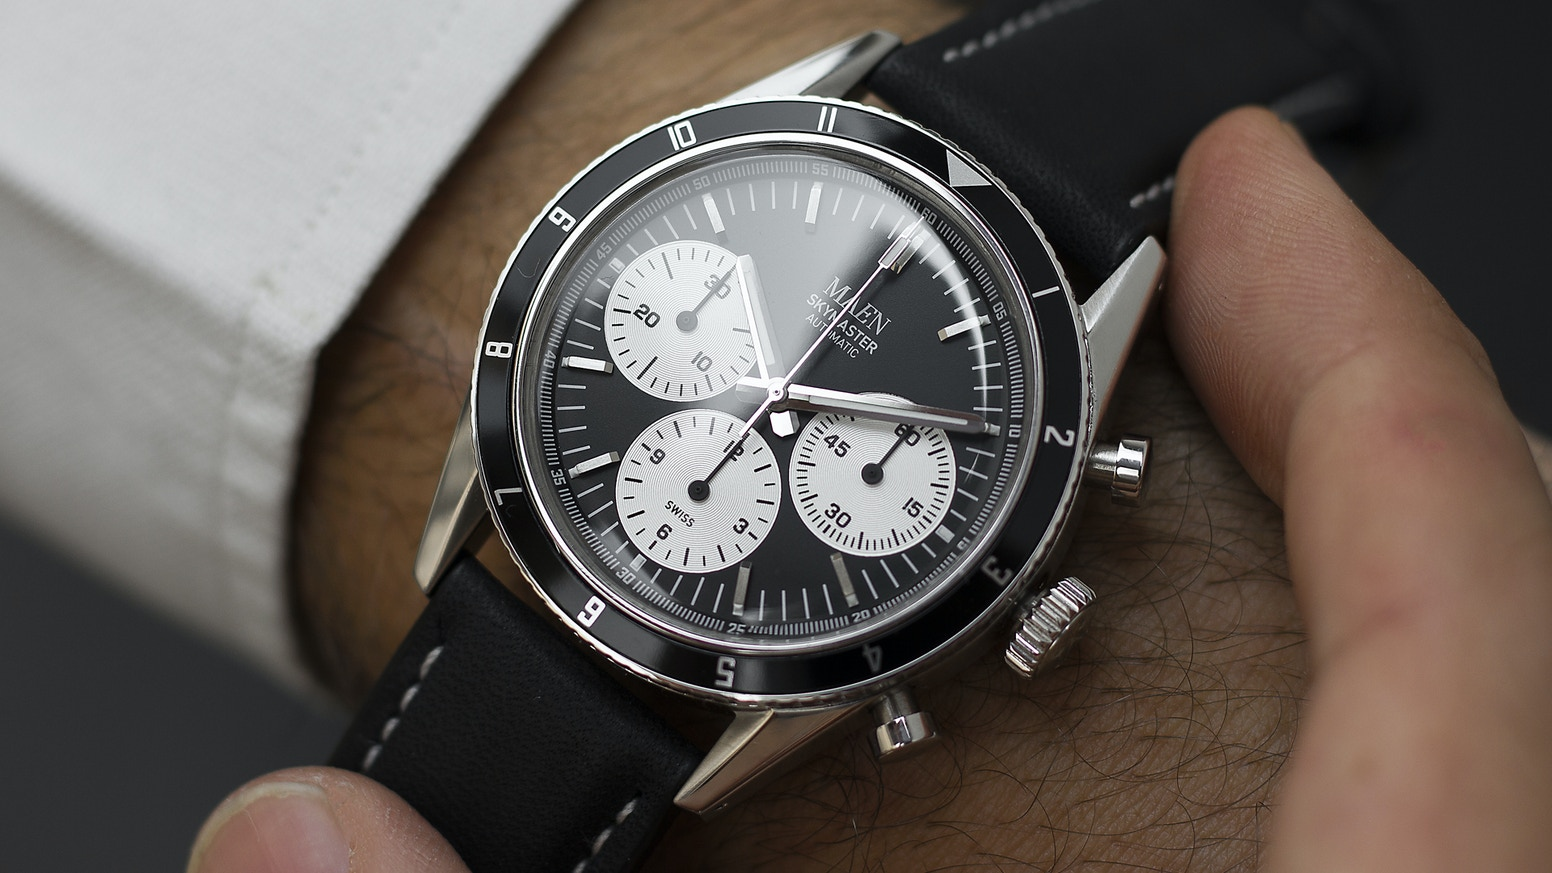 The Skymaster 38 is an affordable vintage styled automatic chronograph